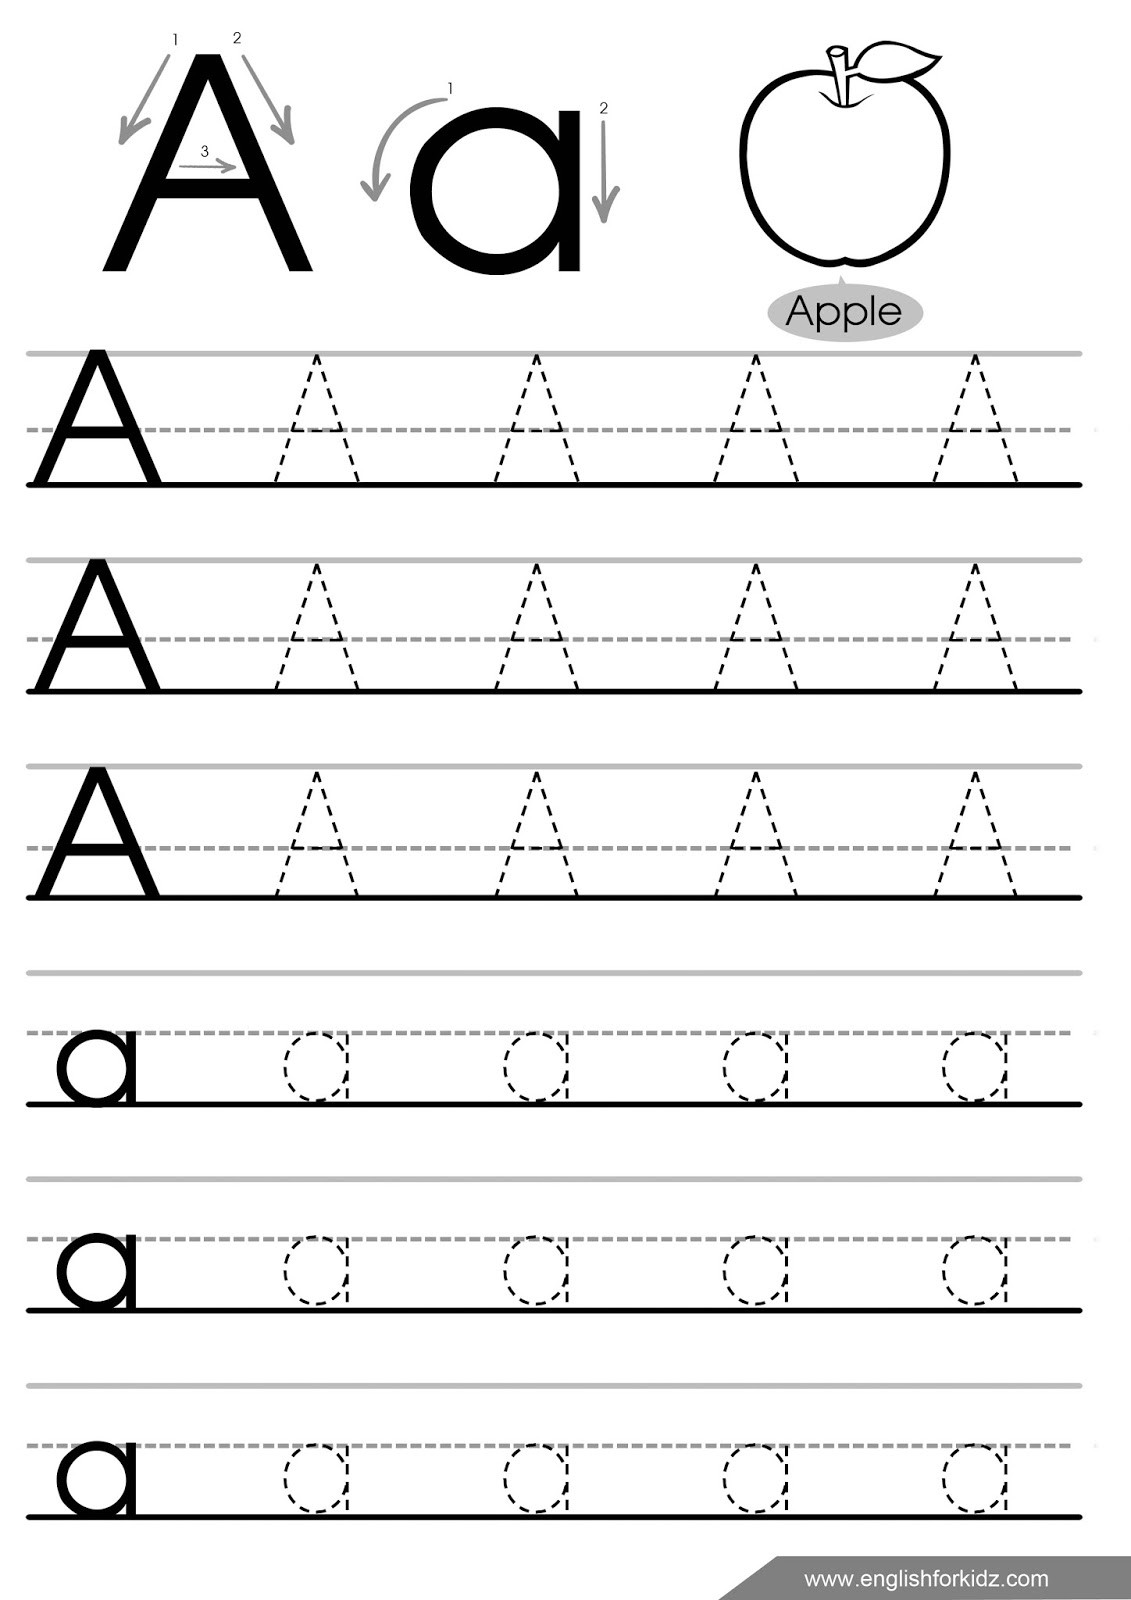 Tracing the Alphabet Worksheets Letter Tracing Worksheets Letters A J